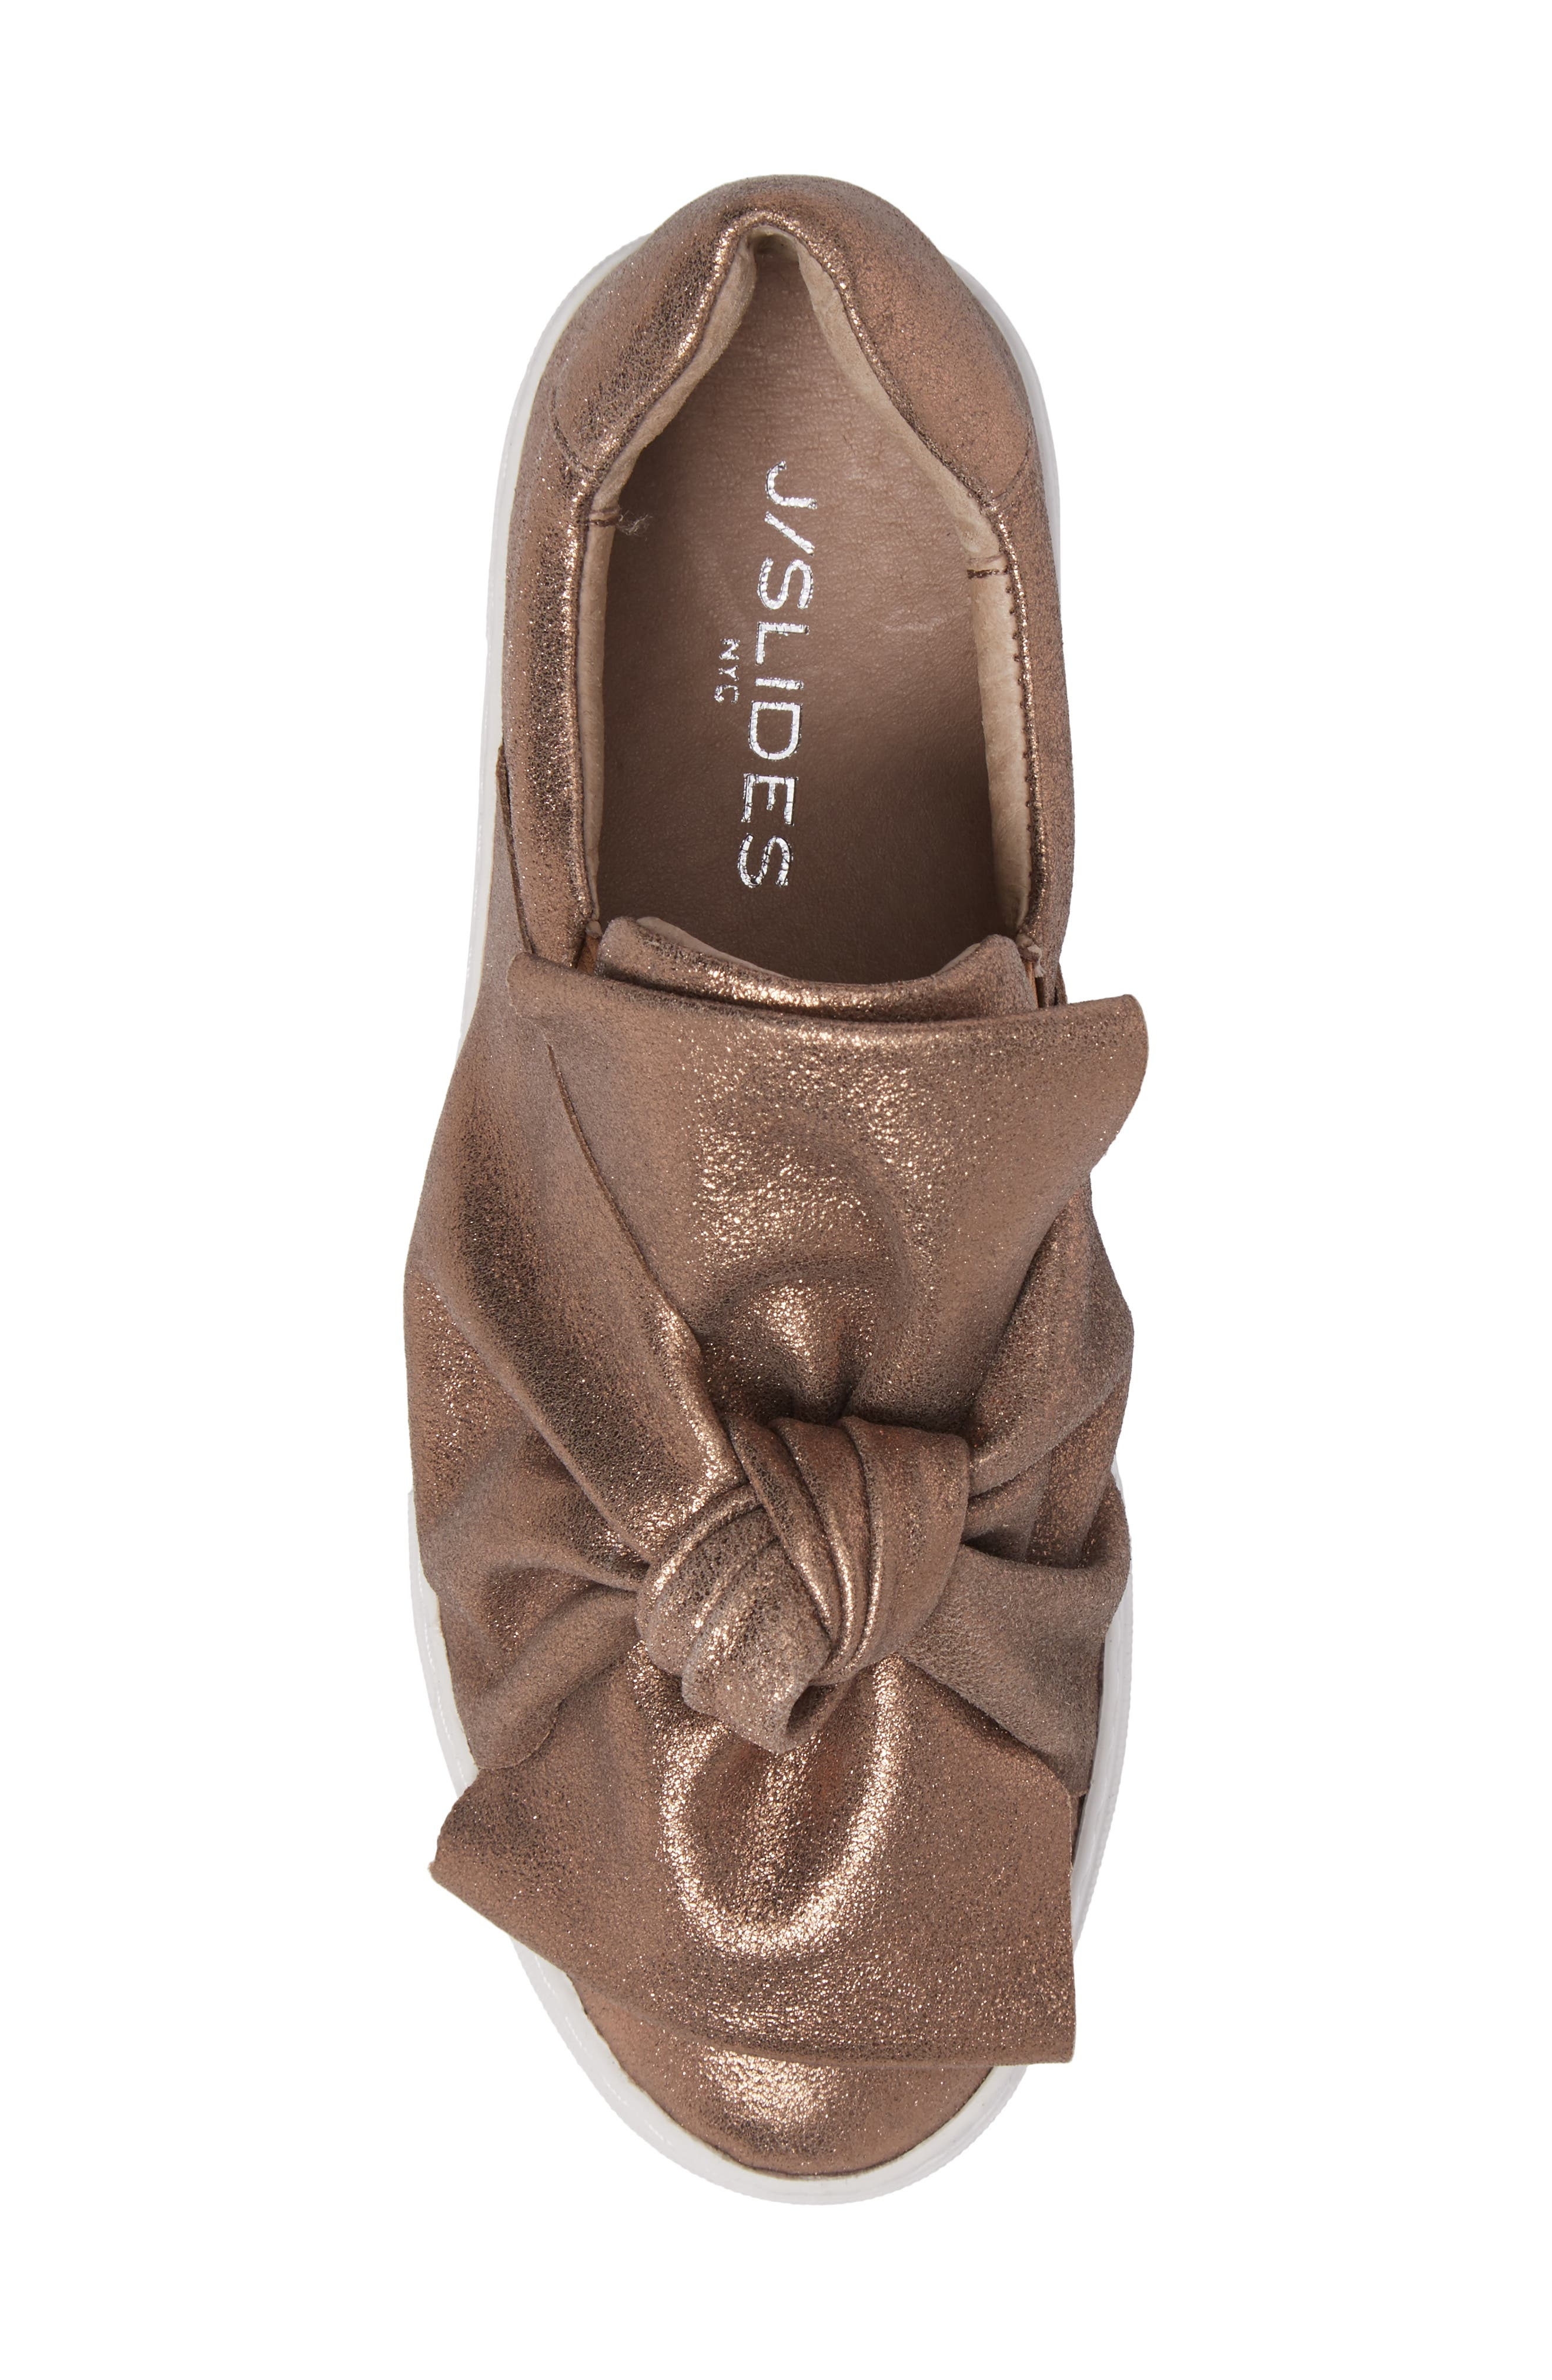 Audra Slip-On Sneaker,                             Alternate thumbnail 5, color,                             Taupe Leather